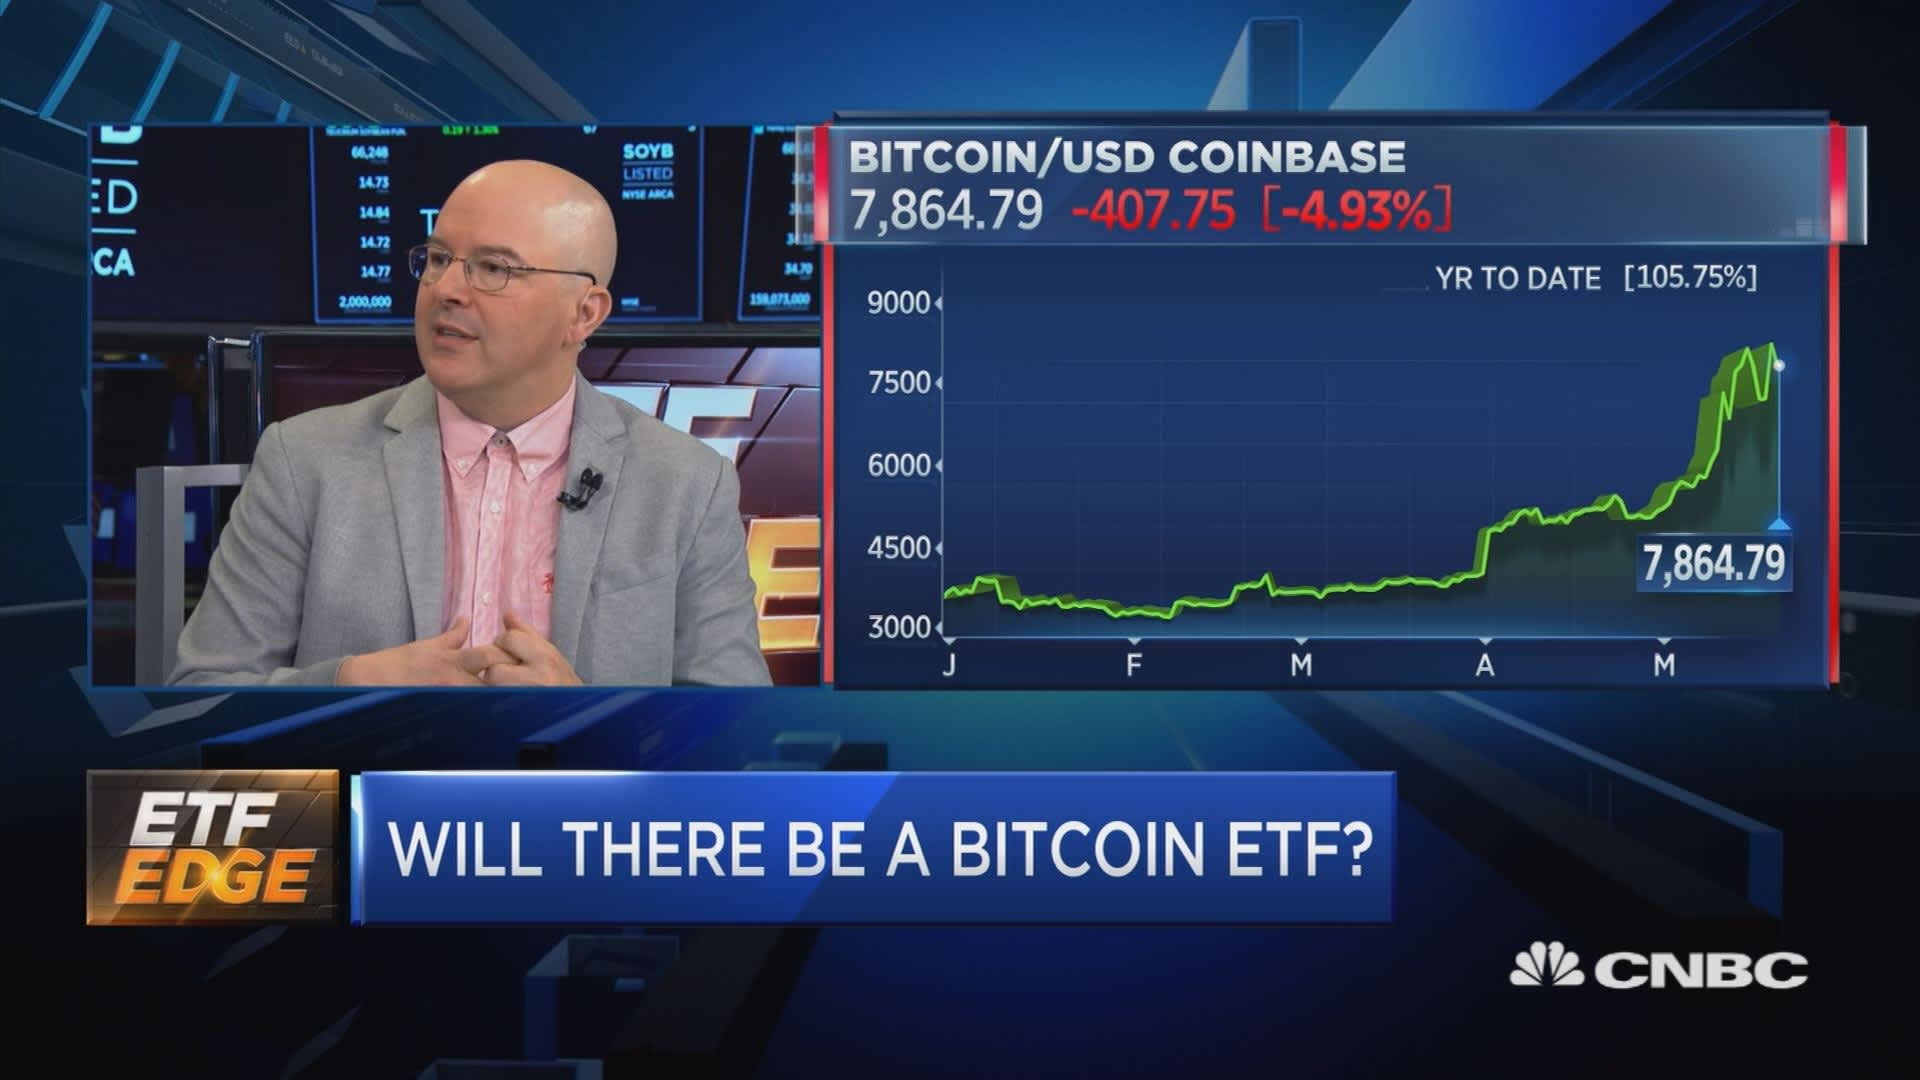 Don't get too excited about the bitcoin ETF just yet: Expert